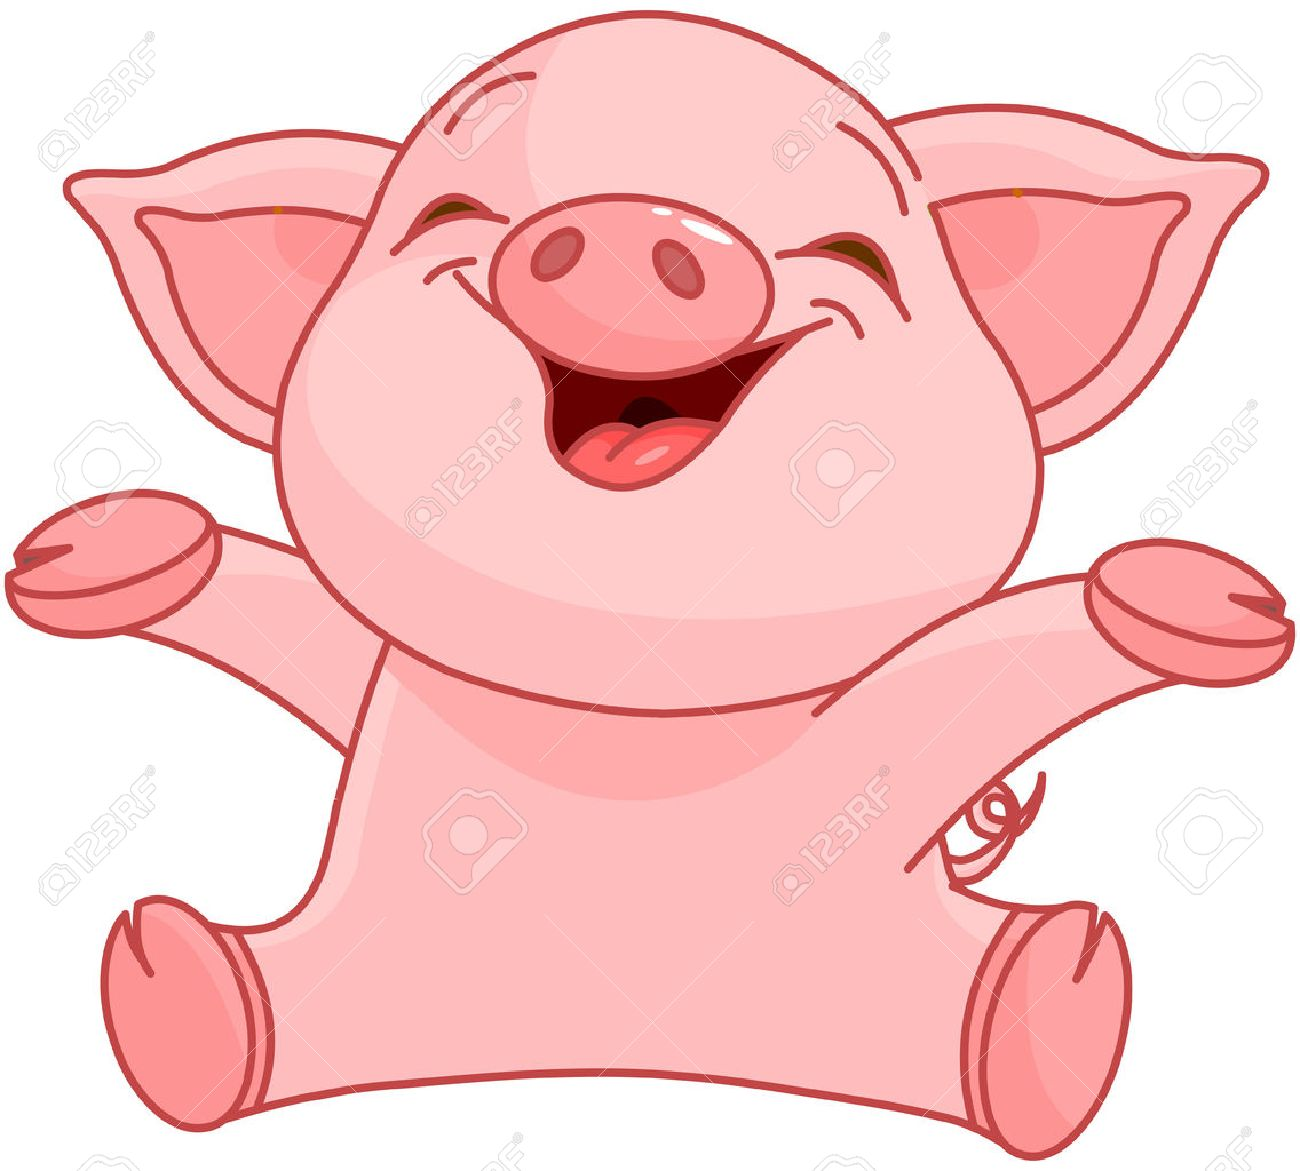 illustration of very cute piggy royalty free cliparts vectors and